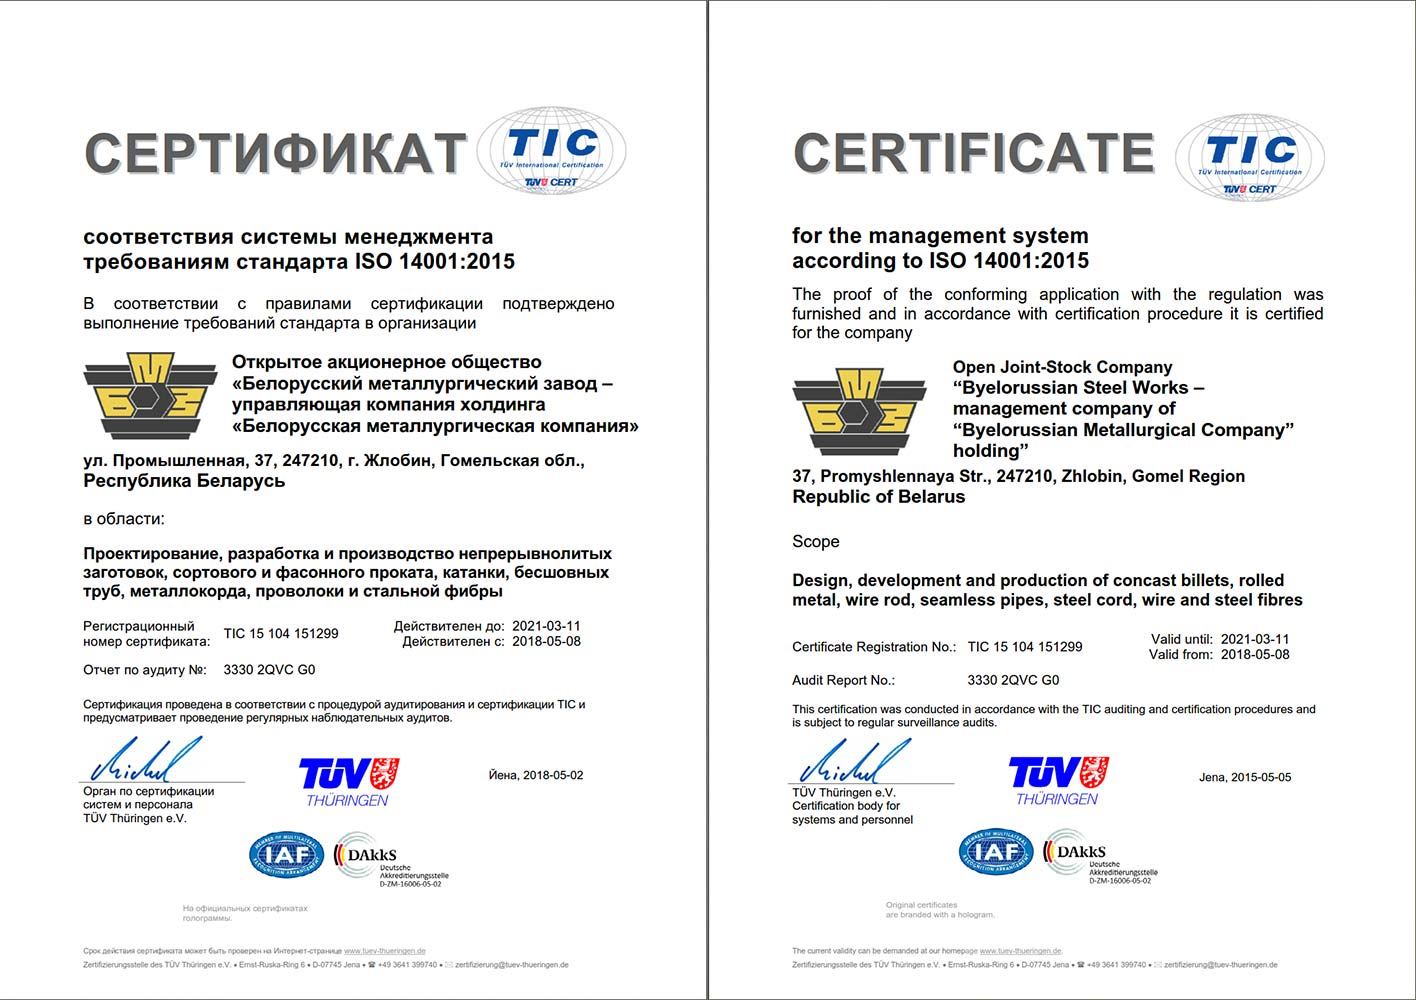 Certificate № TIC 15 100 151299 (TUV Thuringen e.V.) of QMS conformity with the requirements of international standard ISO 14001:2015 to design, develop and produce concast billet, rolled product, wire rod, seamless pipes, steel cord, wire and steel fiber